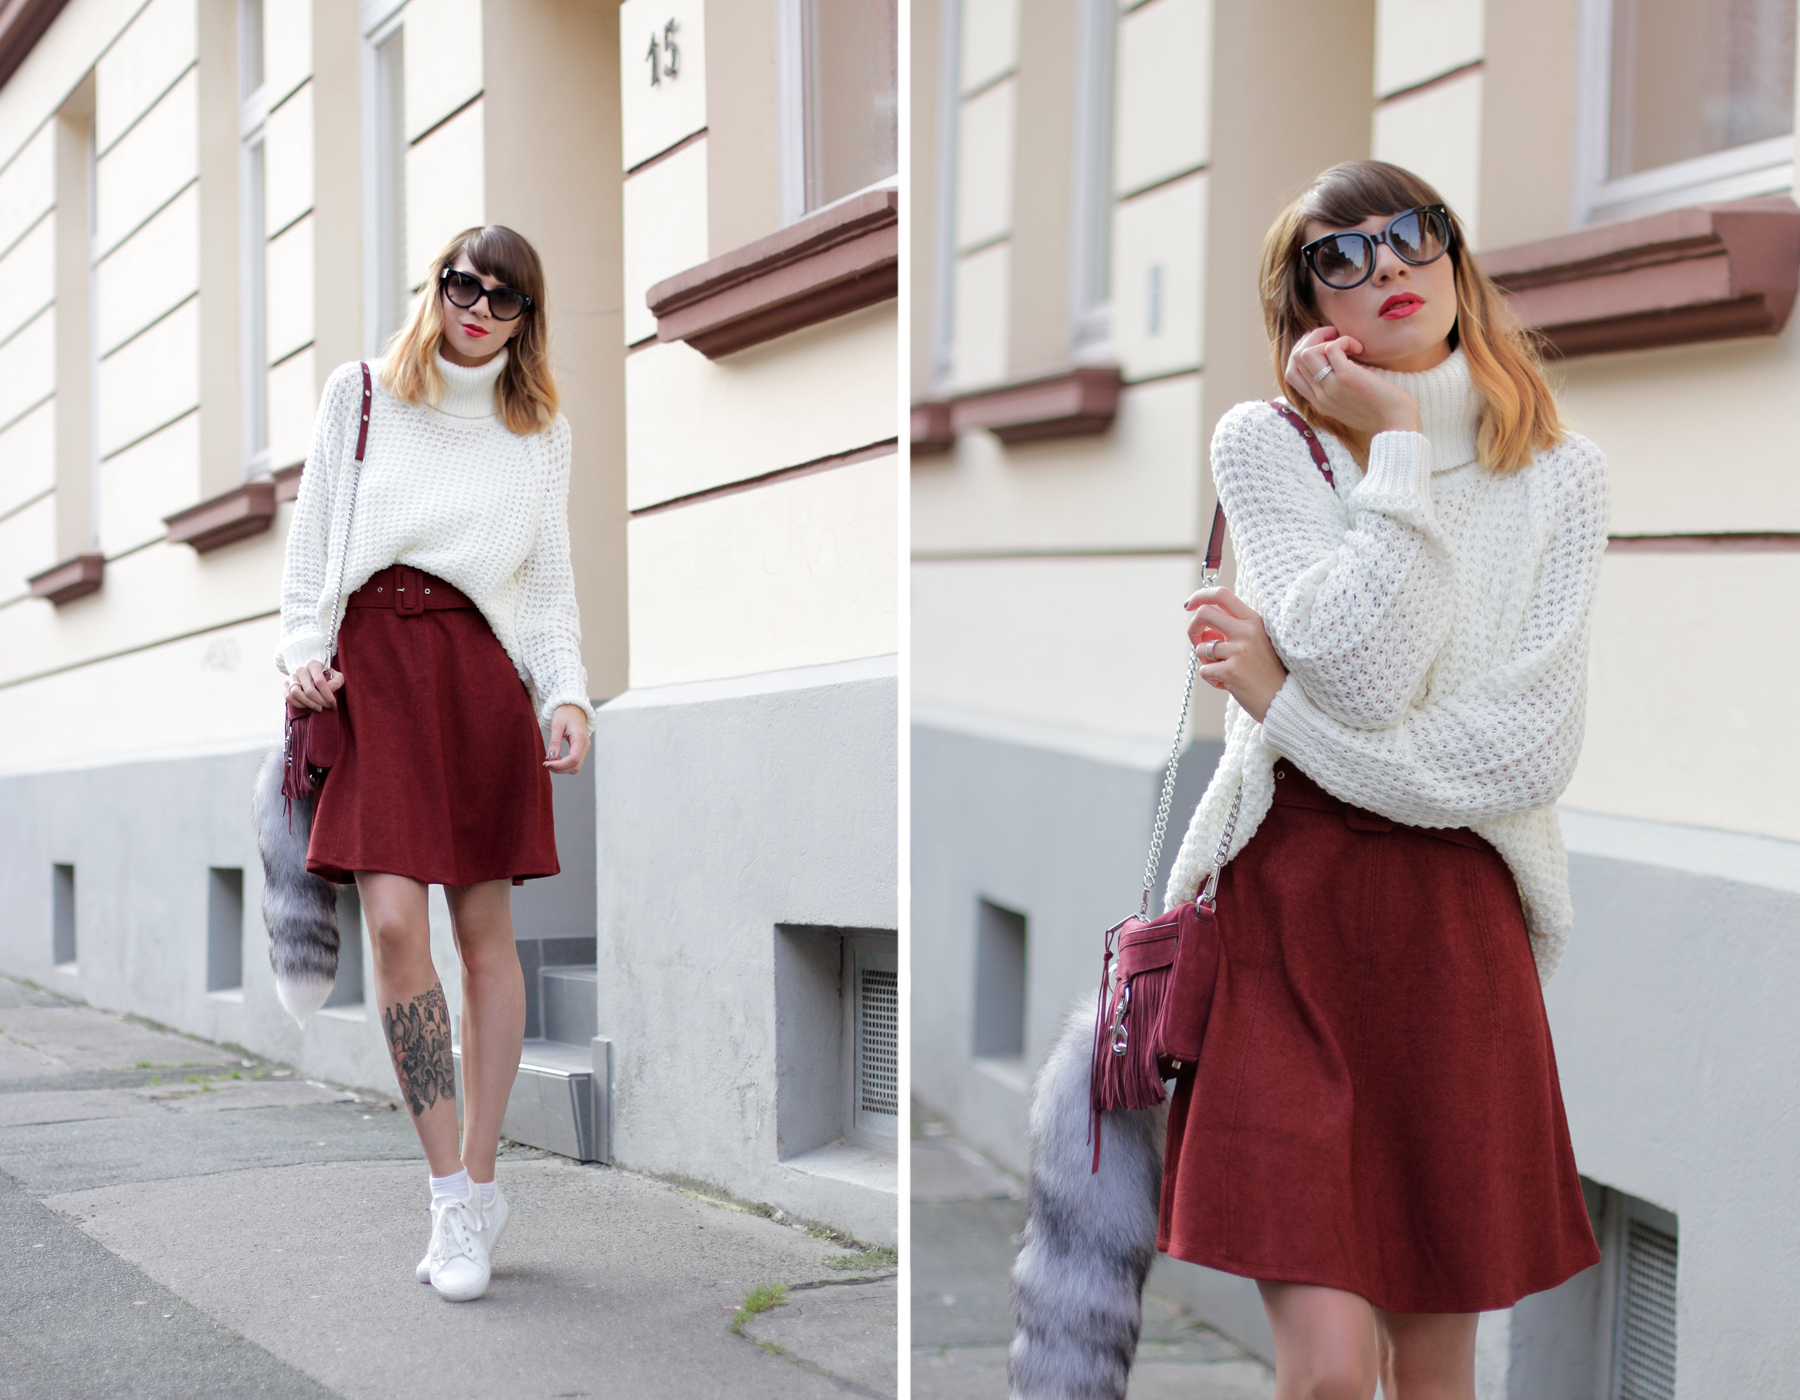 edited the label red burgundy a line skirt seventies soft white knit rebecca minkoff wine bag cross body cats & dogs fashionblogger ricarda schernus blog berlin hannover düsseldorf 2